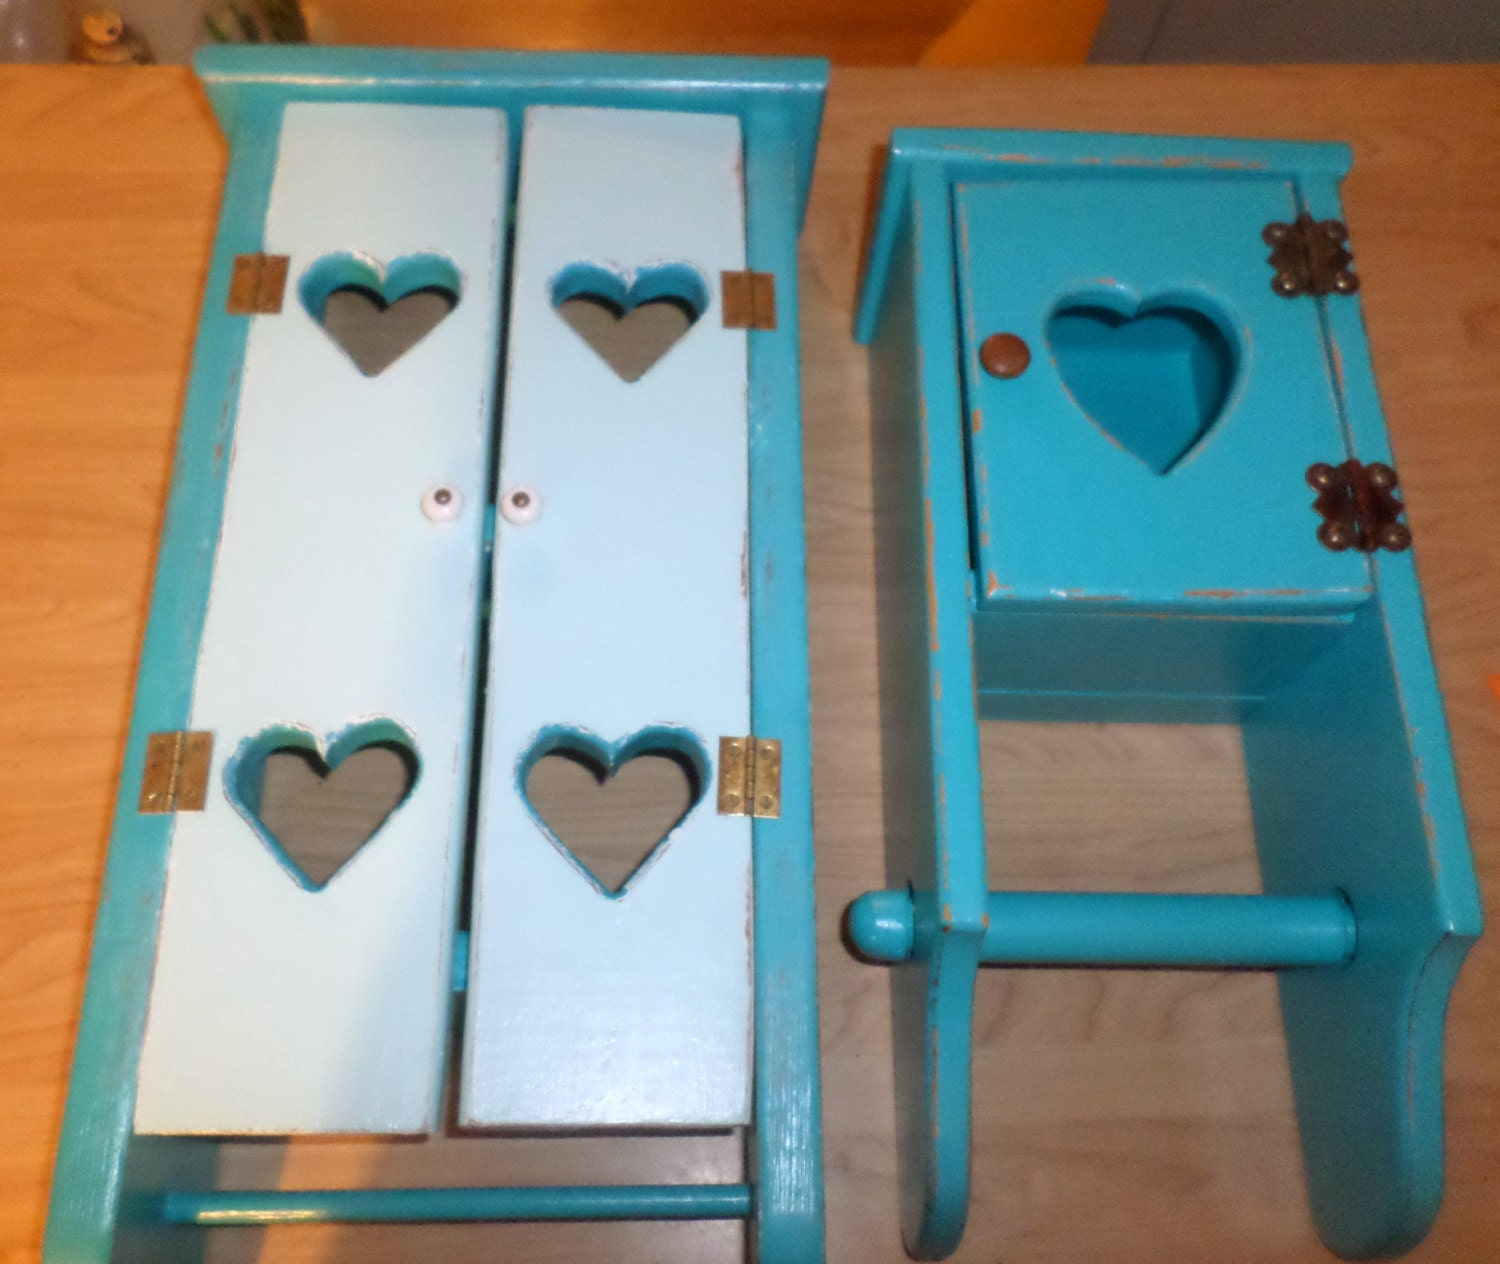 Upcycled beach house cottage bathroom accessories by skraptzz - Beach toilet paper holder ...